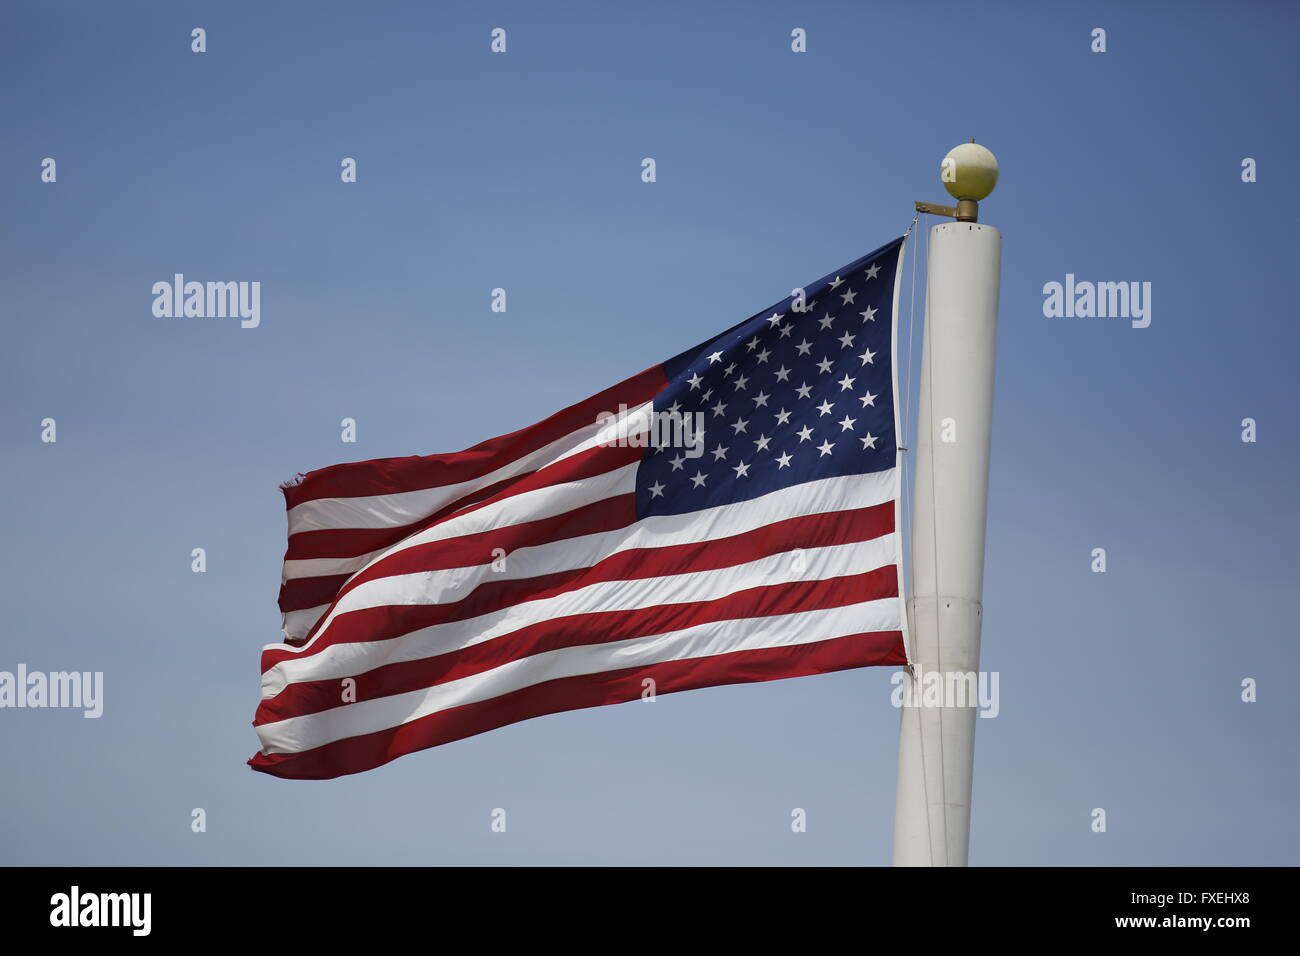 Unites States flag flying on cell phone tower. - Stock Image